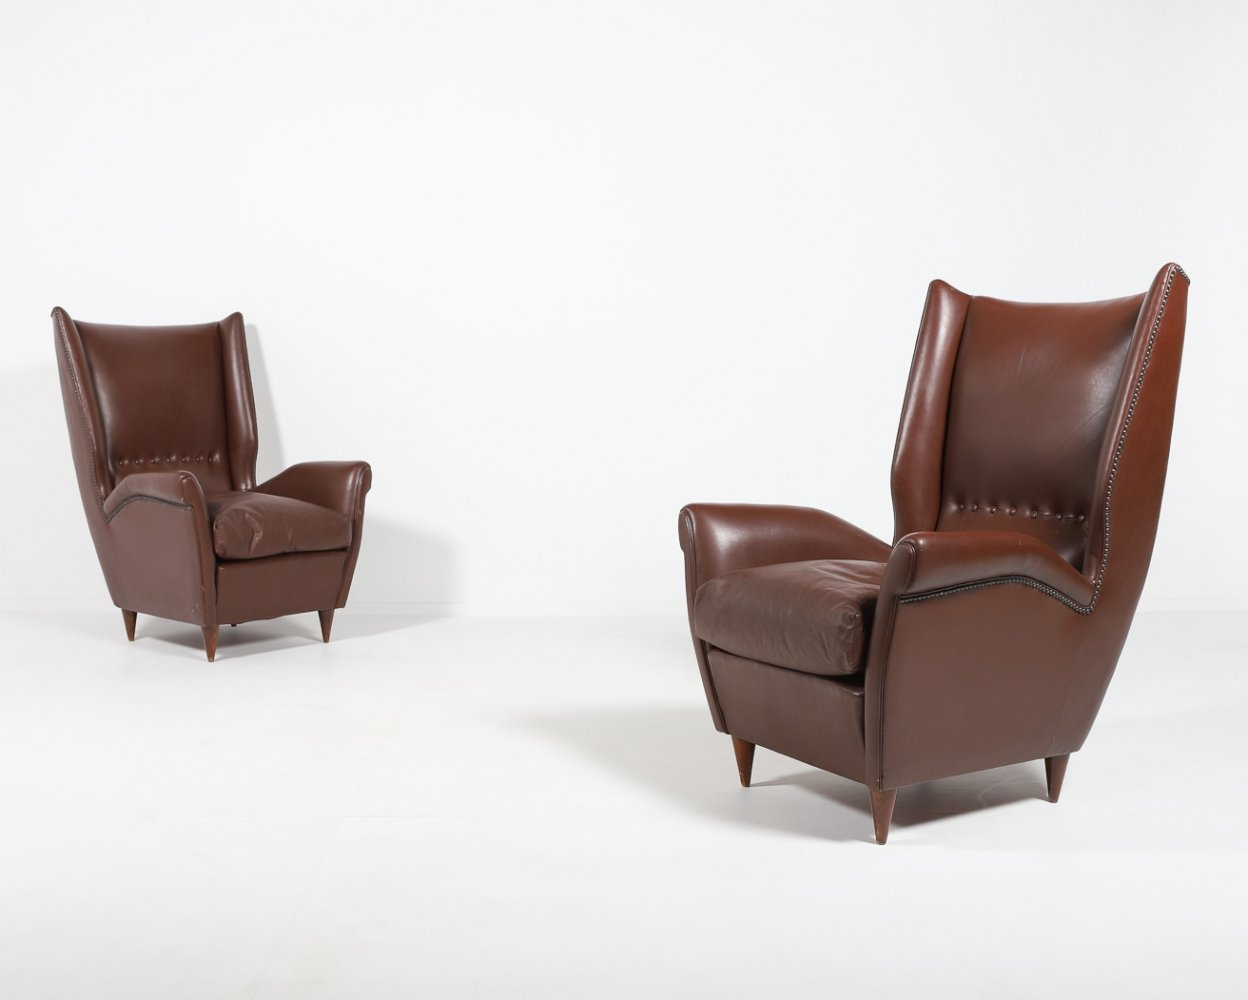 Pair of Italian Wingback Lounge armchairs Model 512 by Gio Ponti, 1950